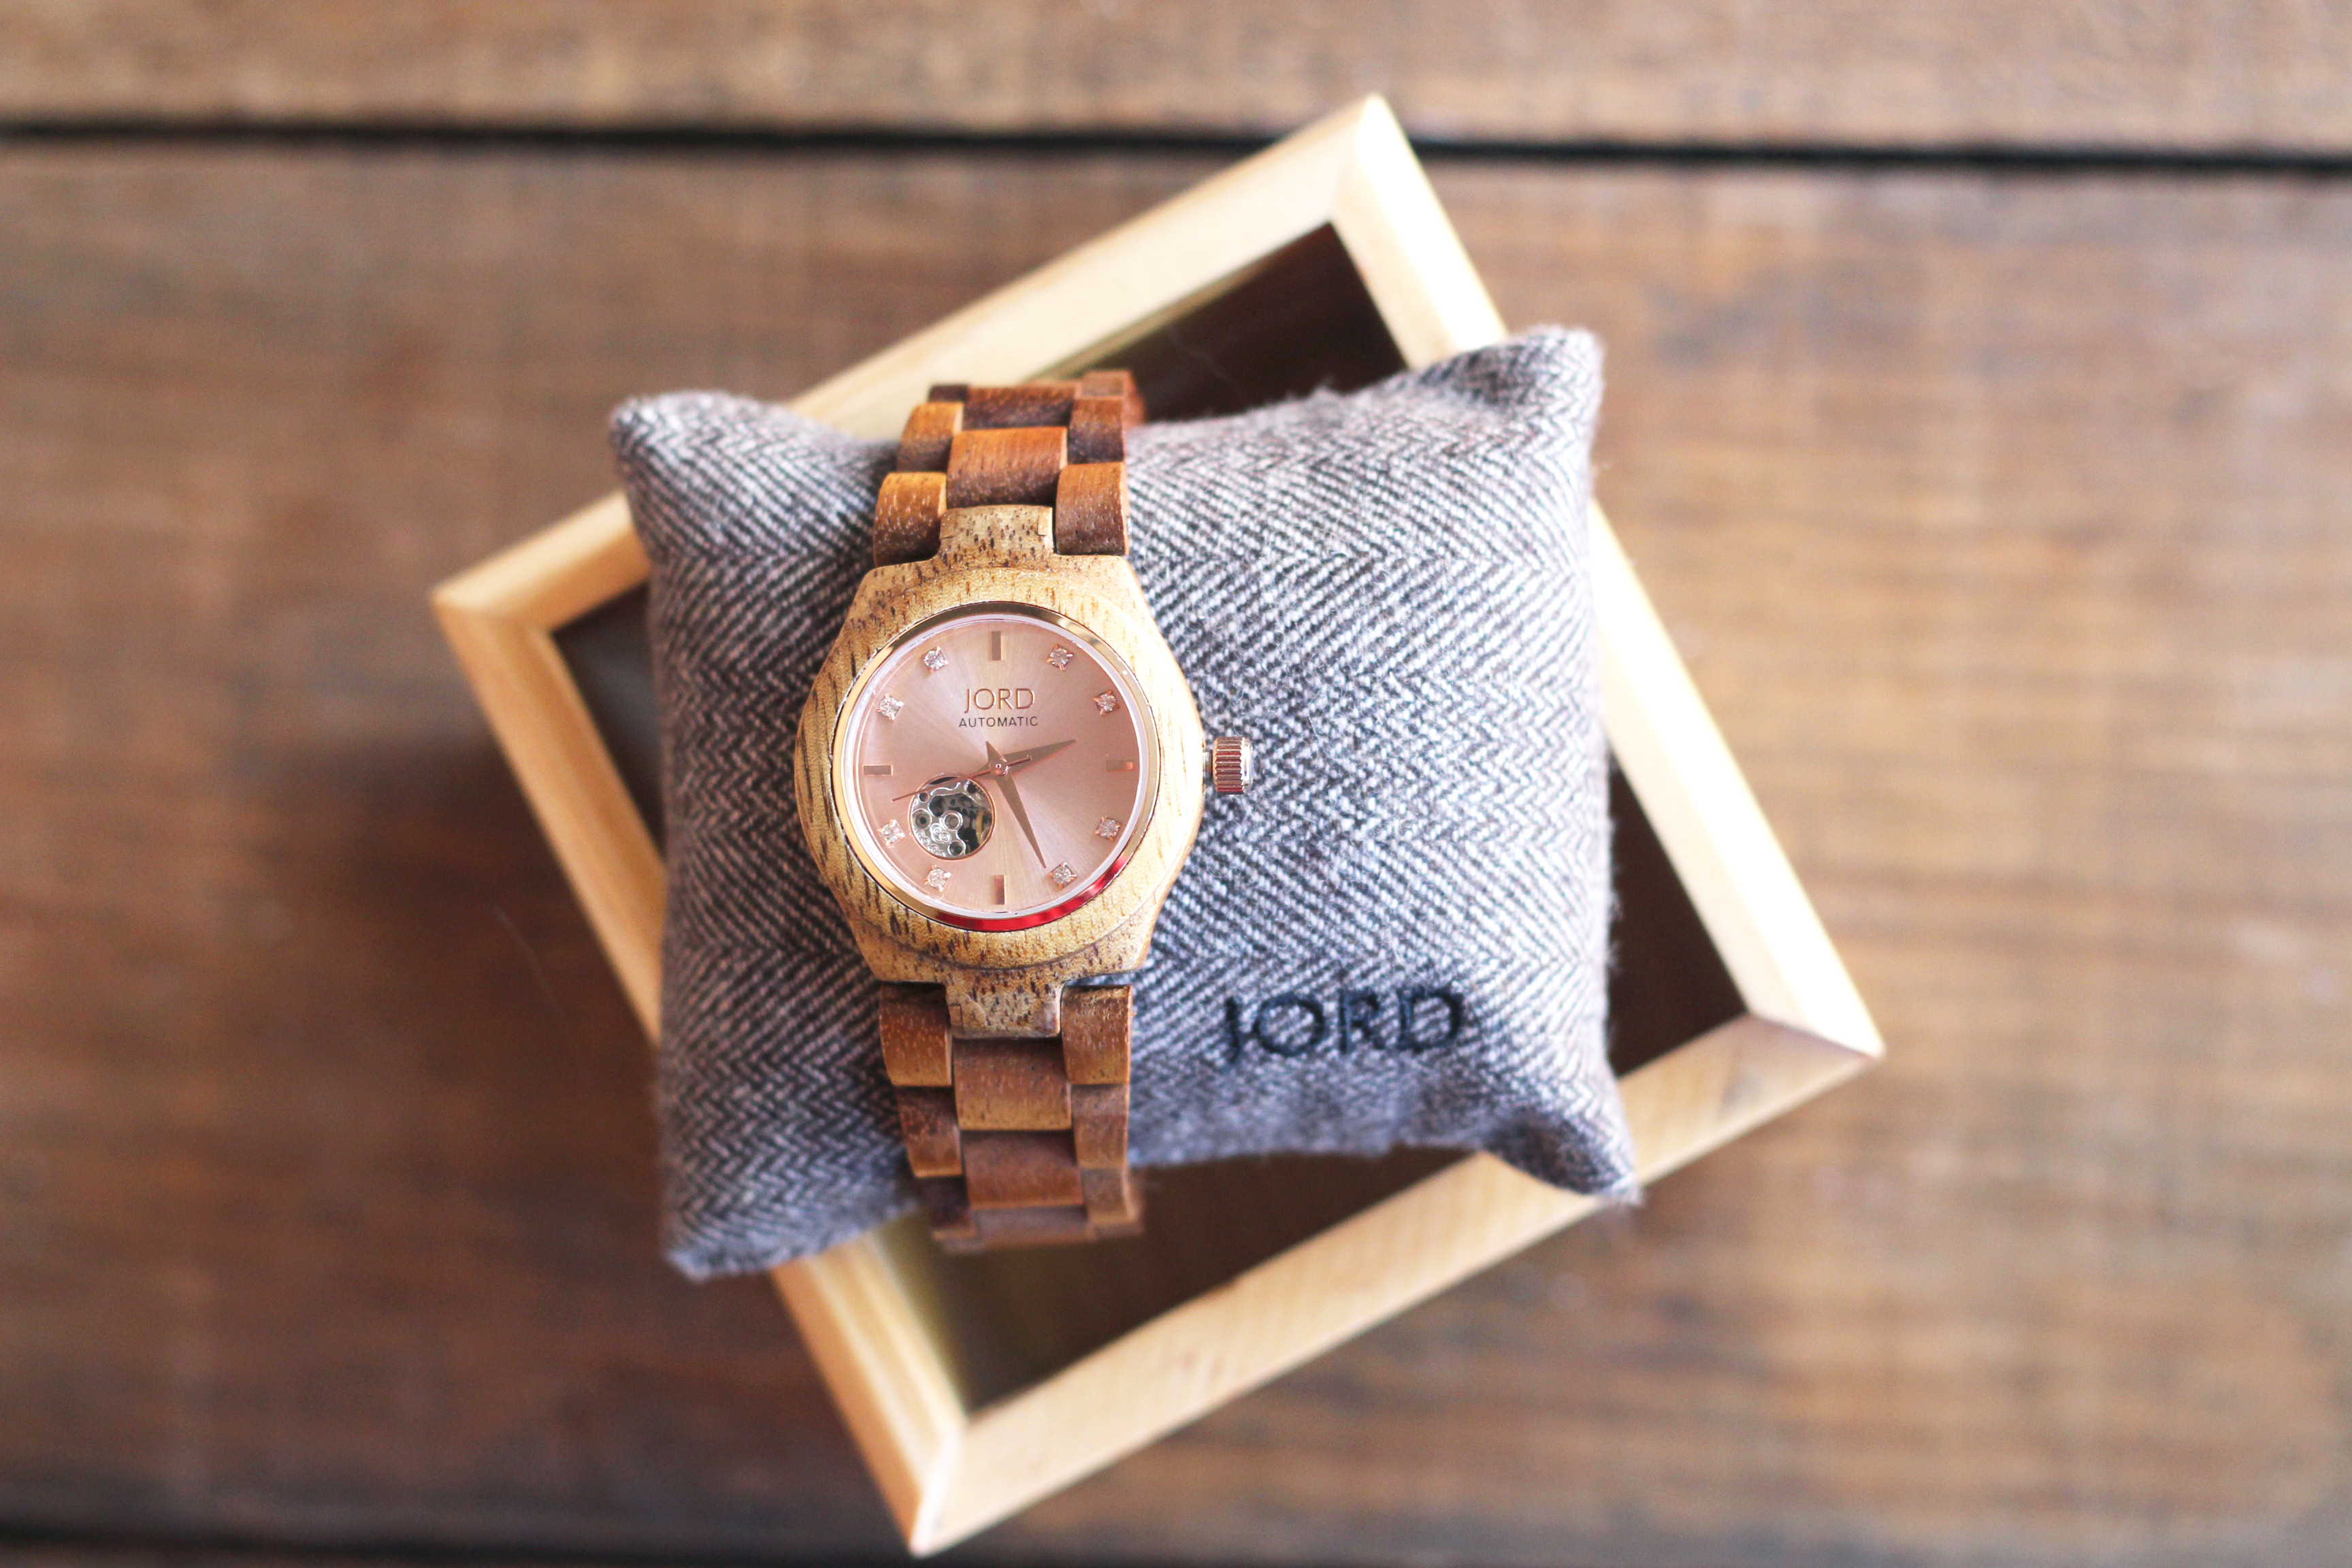 Jord watch in box-2